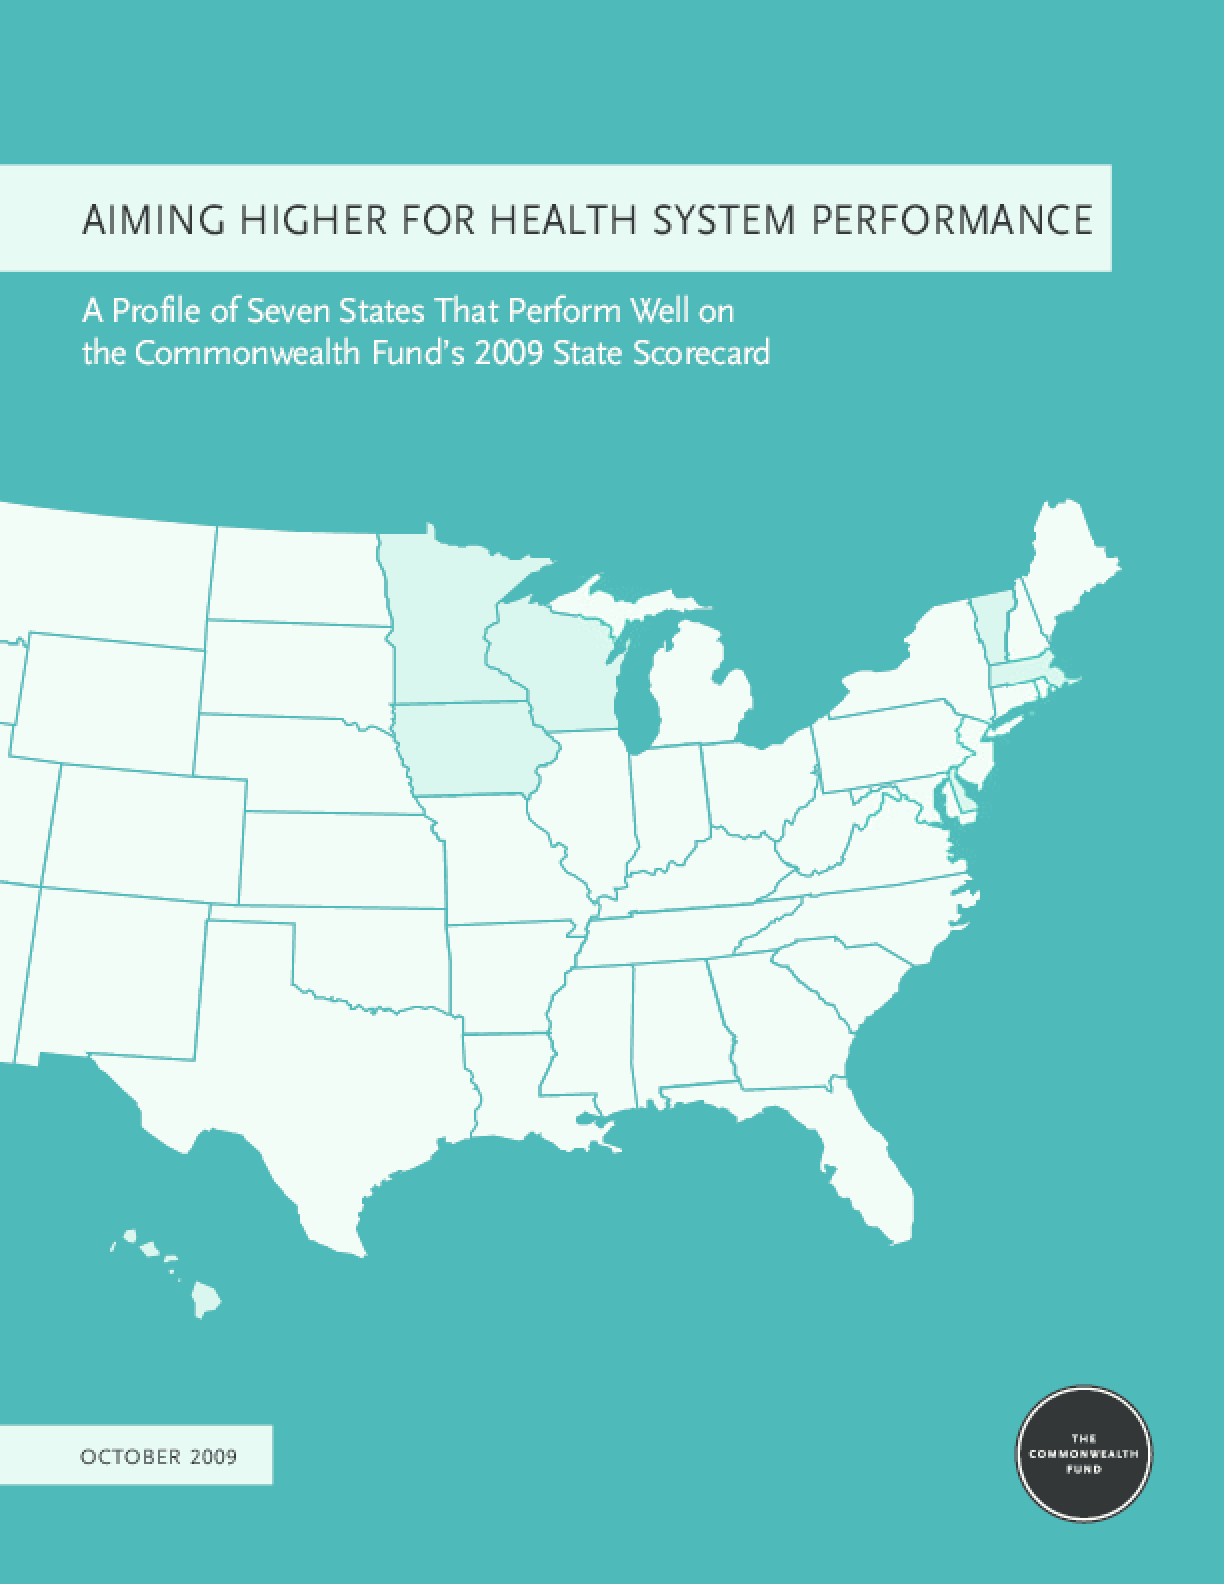 Aiming Higher for Health System Performance: A Profile of Seven States That Perform Well on the Commonwealth Fund's 2009 State Scorecard